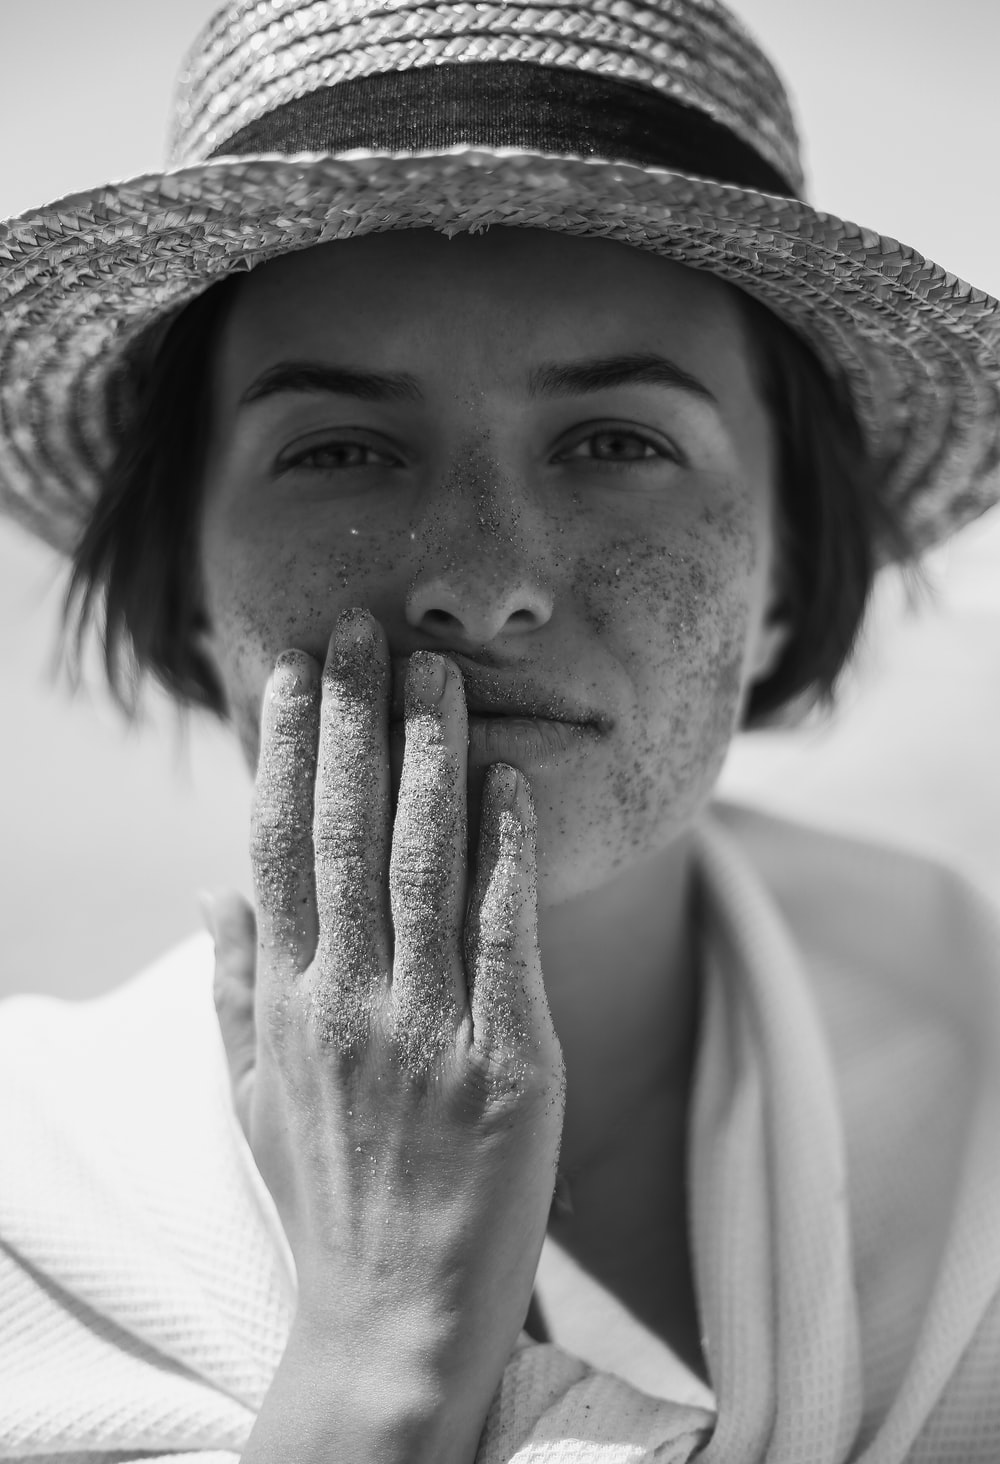 grayscale photography of woman wearing sunhat